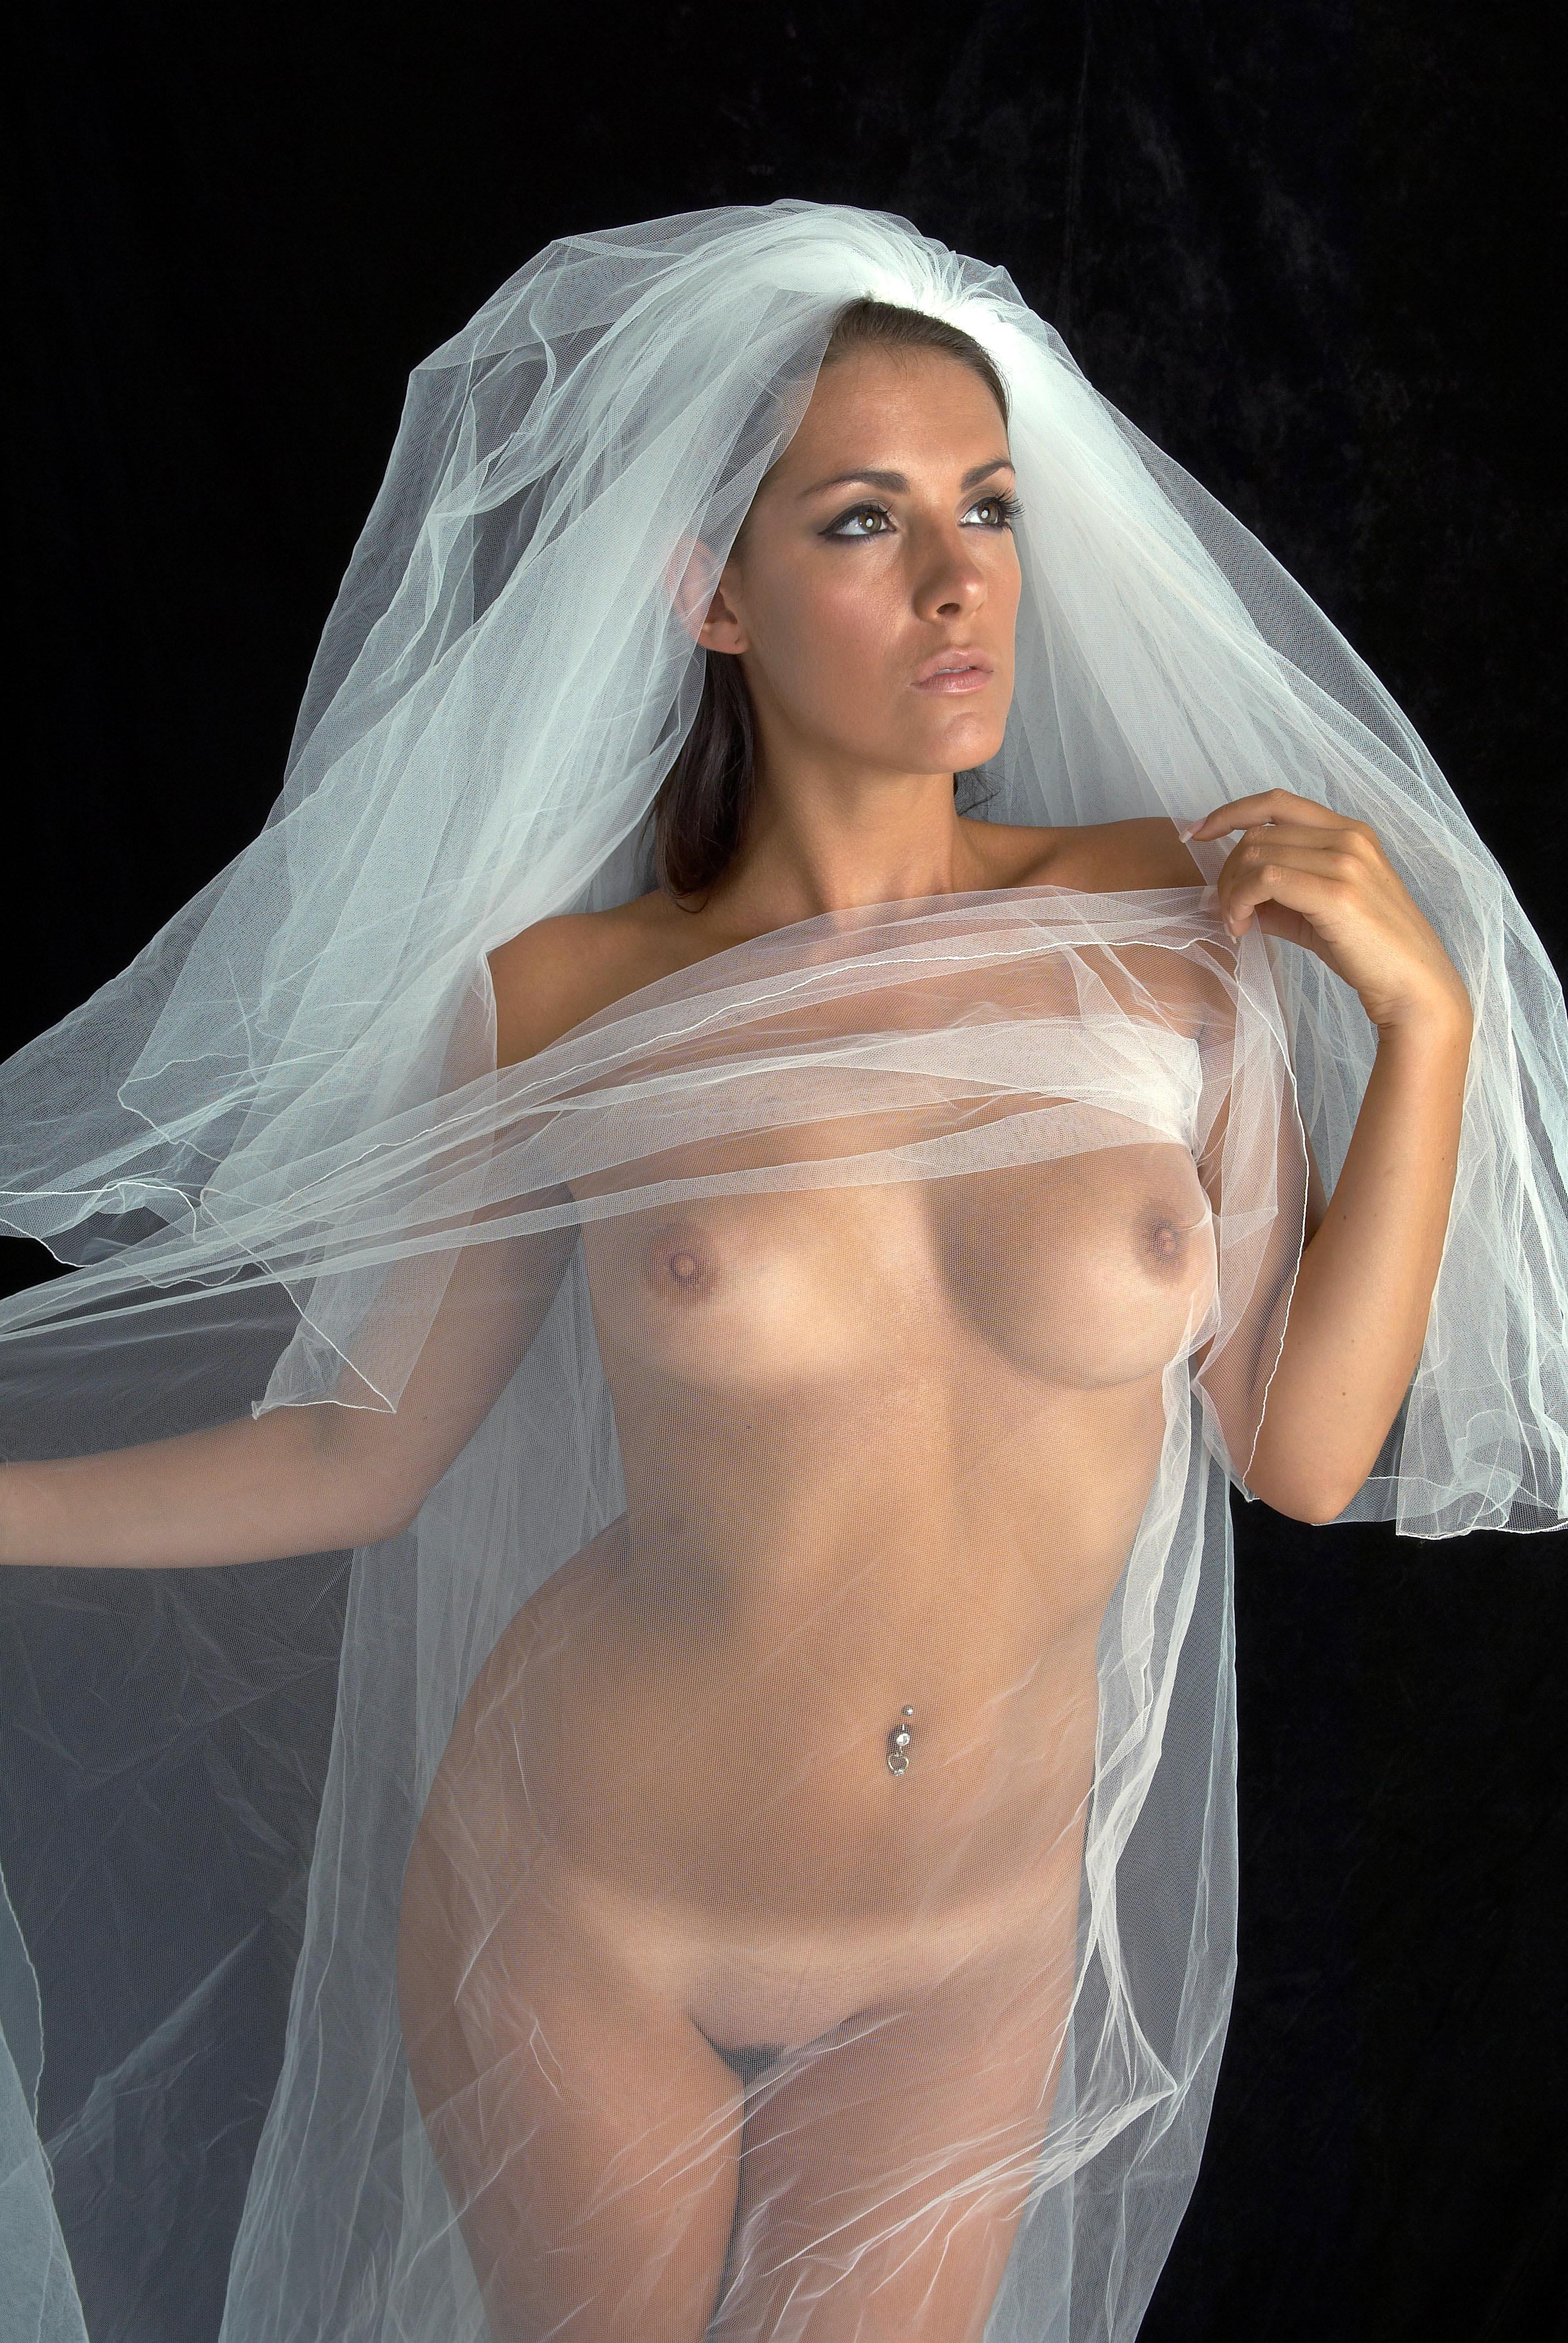 Bride Appalled By